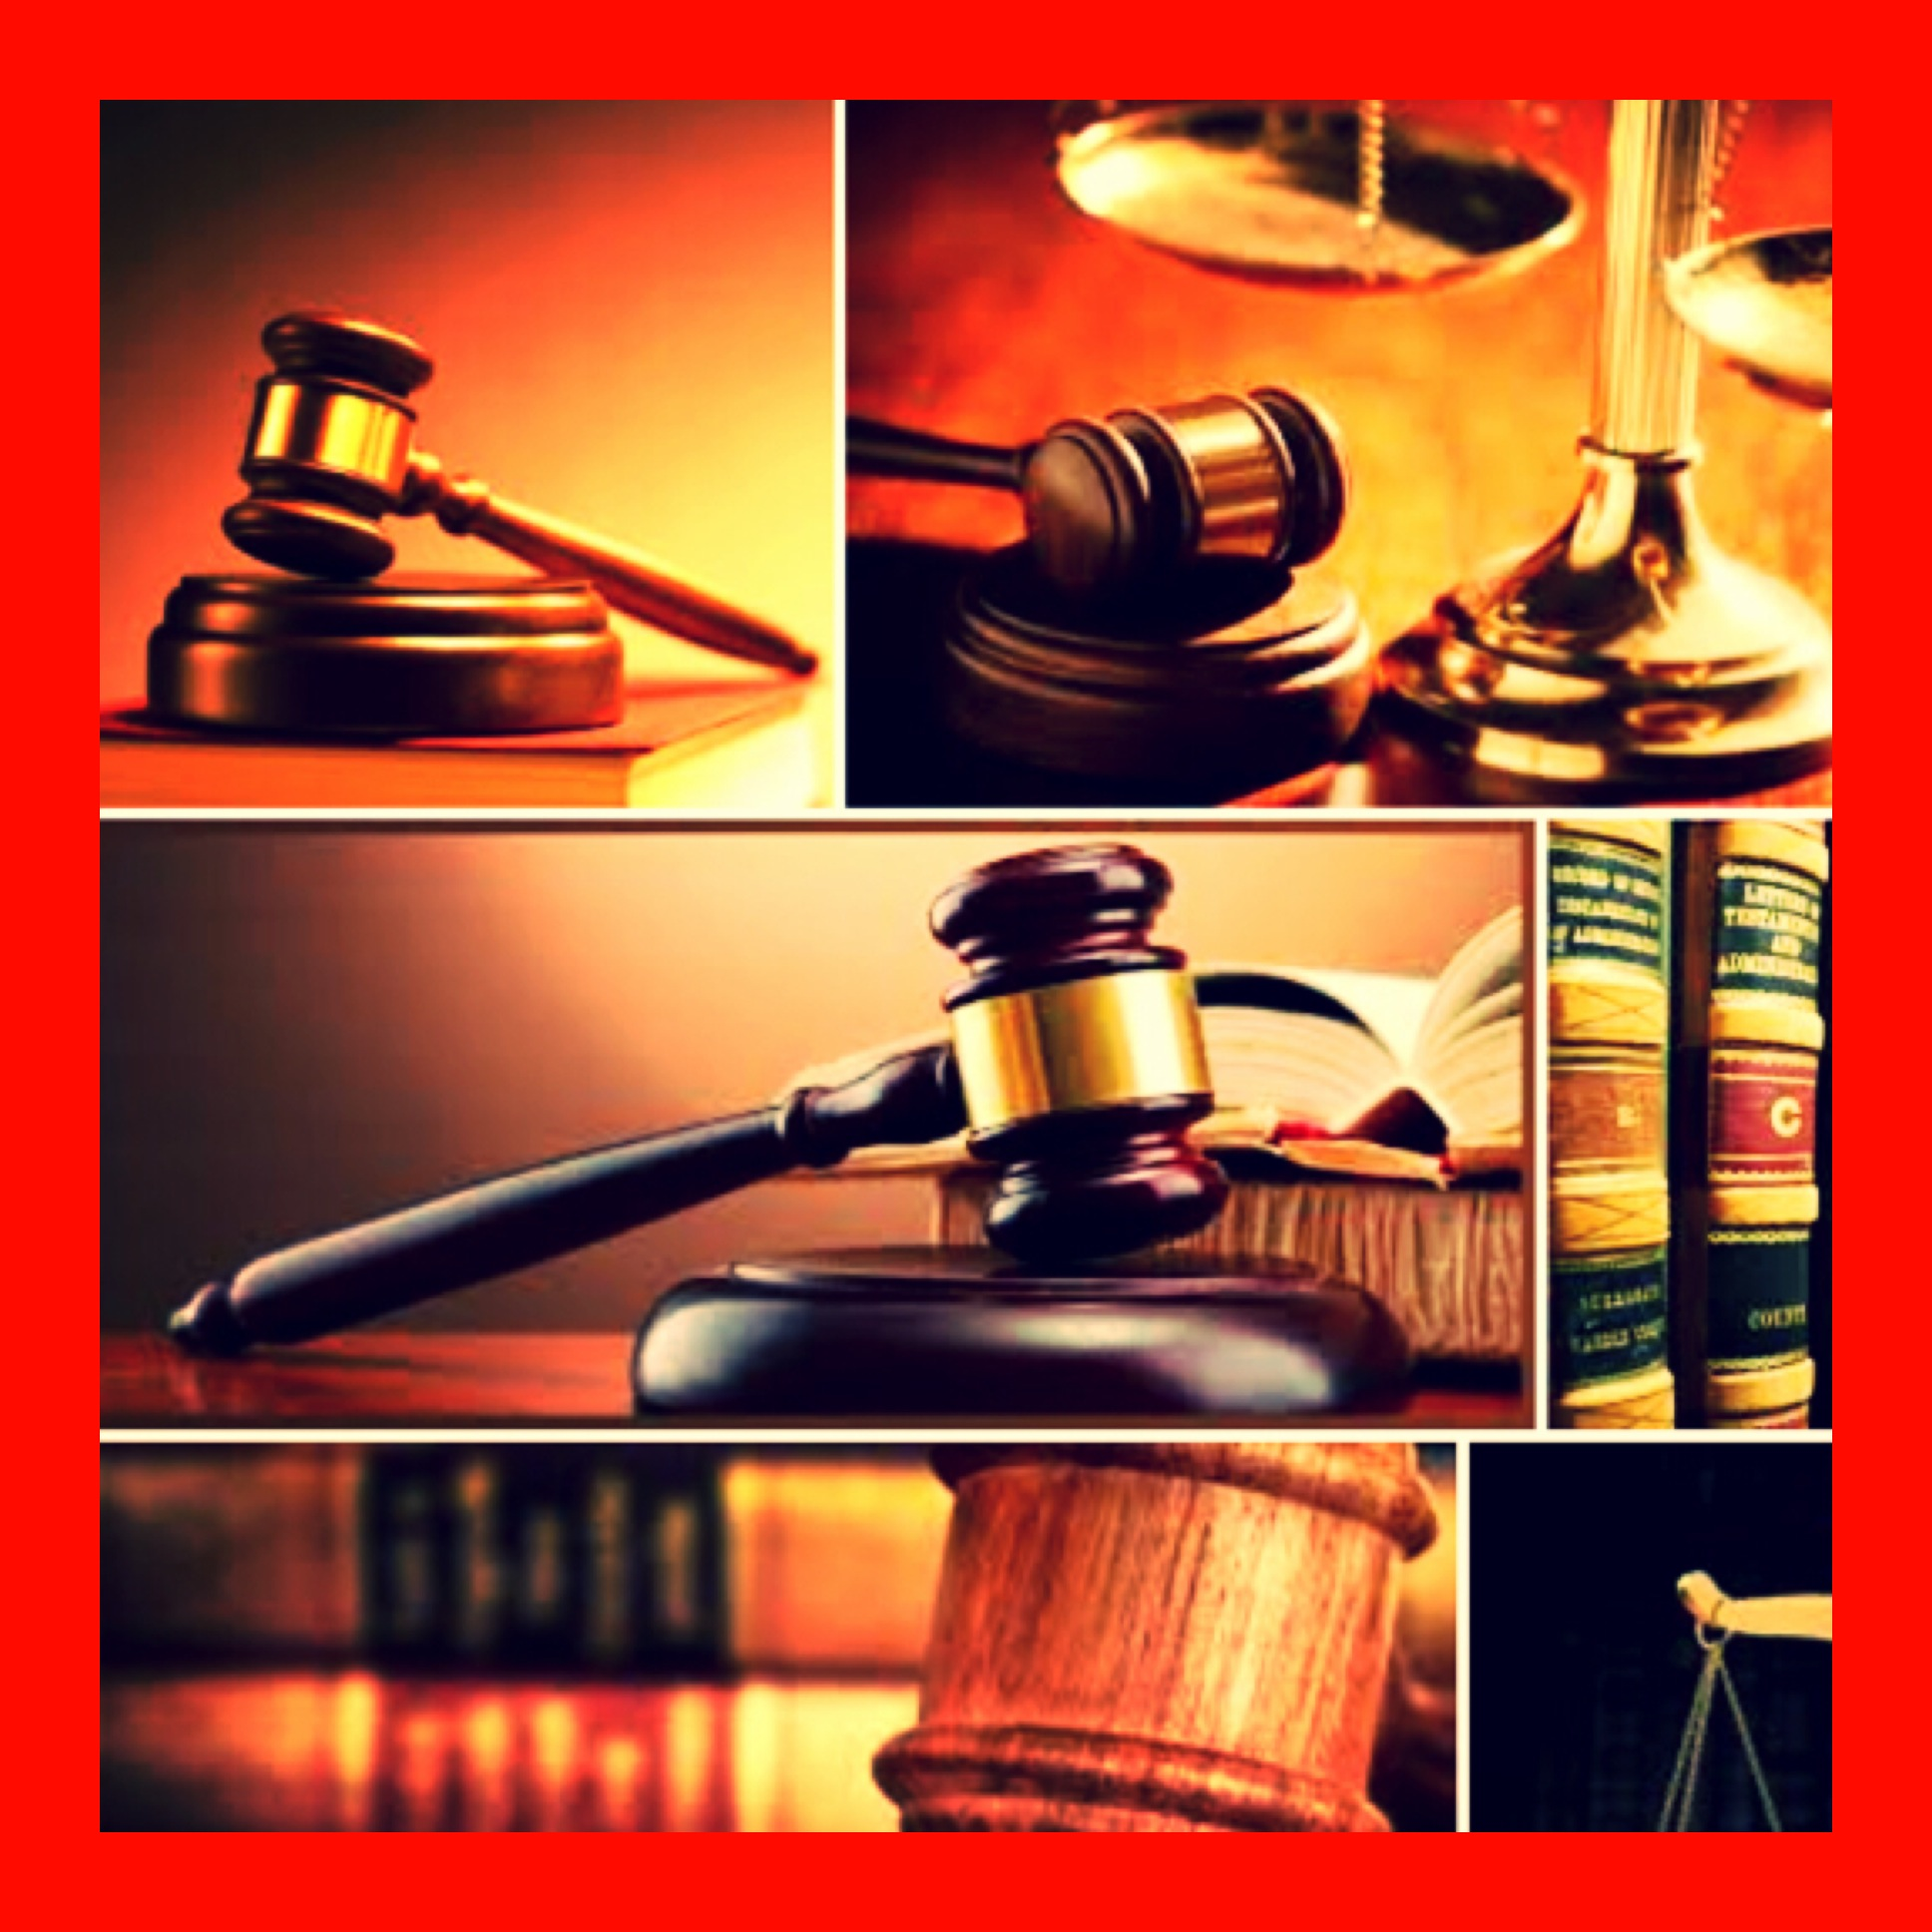 The BEST defense LAWYERS and DUI ATTORNEYS in Charlottesville Richmond Virginia BEST DEFENSE LAWYERS CHARLOTTESVILLE AND RICMNOD VIRIGNIA The BEST, professional, recommended, and most trusted, defense attorneys and DUI lawyers, reside in Charlottesville and Richmond